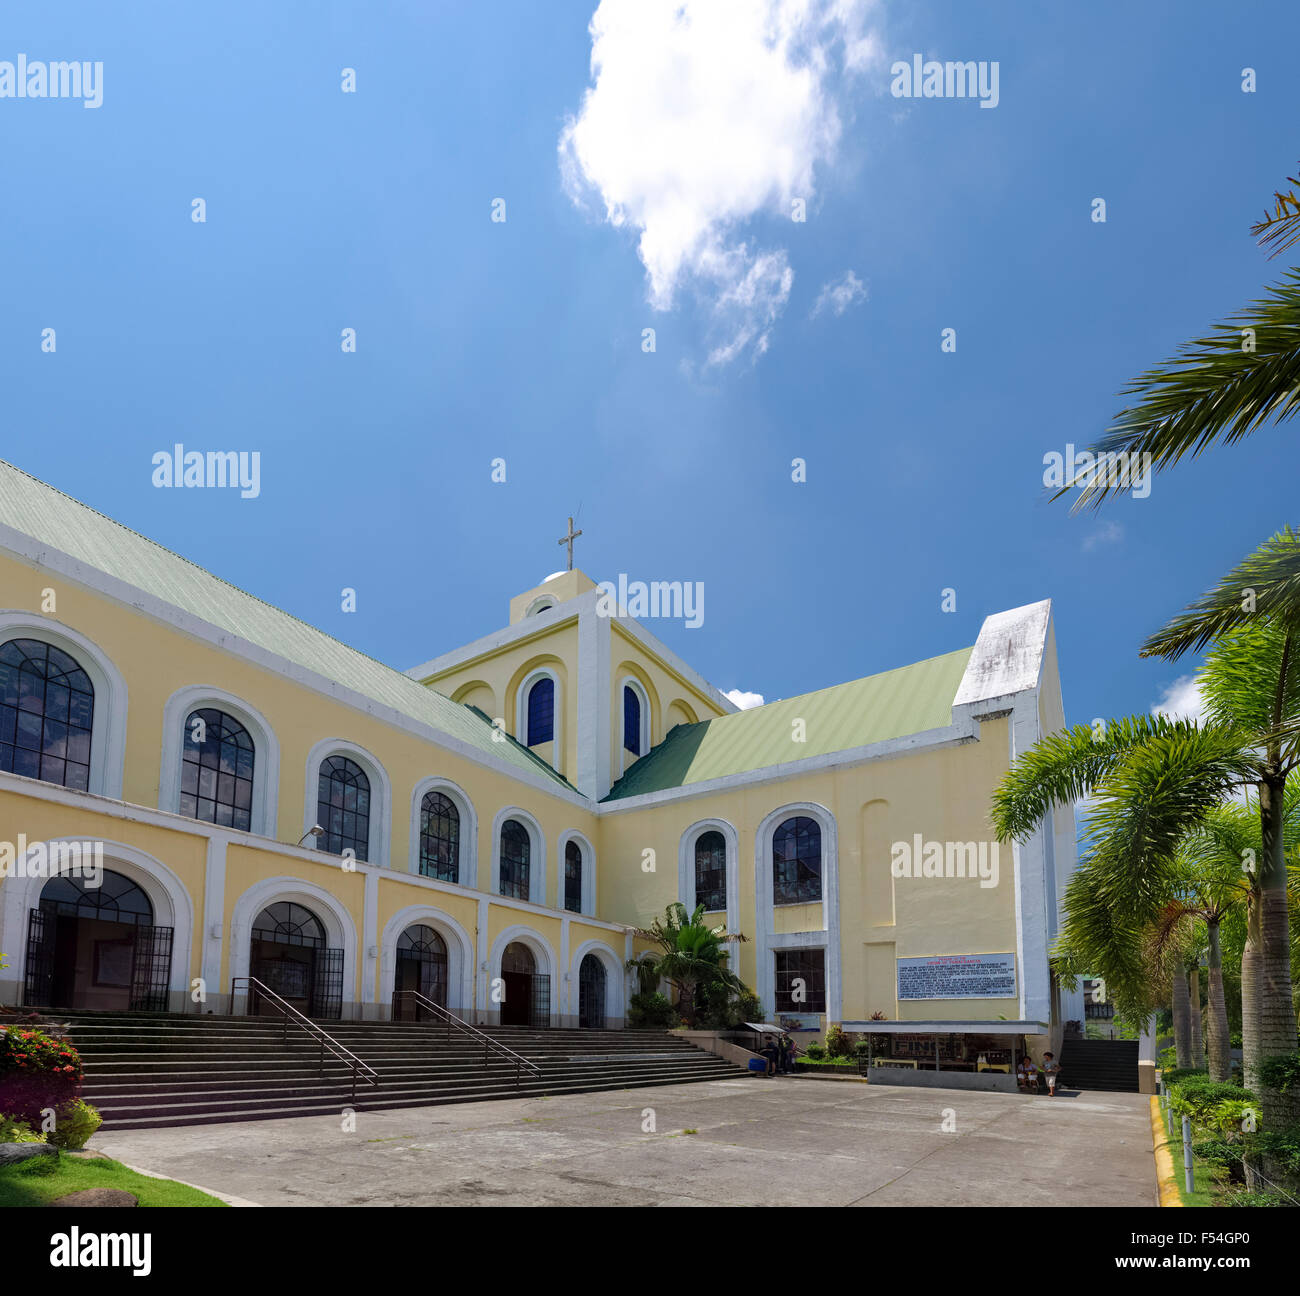 NAGA CITY, PHILIPPINES - MAY 28, 2015: Our lady of penafrancia church exterior. The Image of Our Lady of Penafrancia - Stock Image